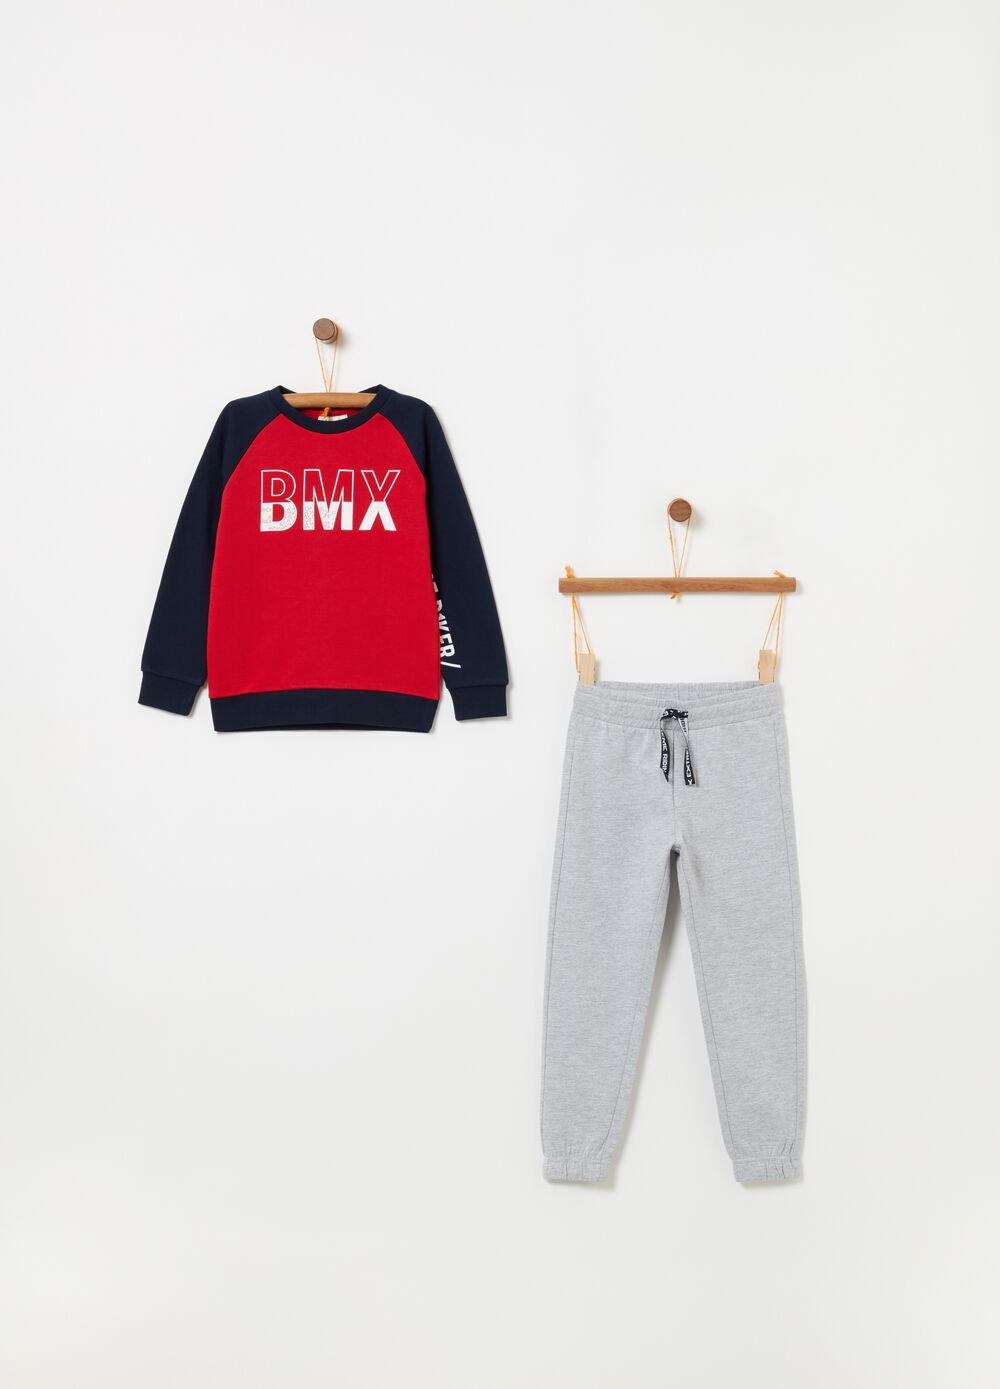 Jogging set consisting of top and trousers in 100% cotton